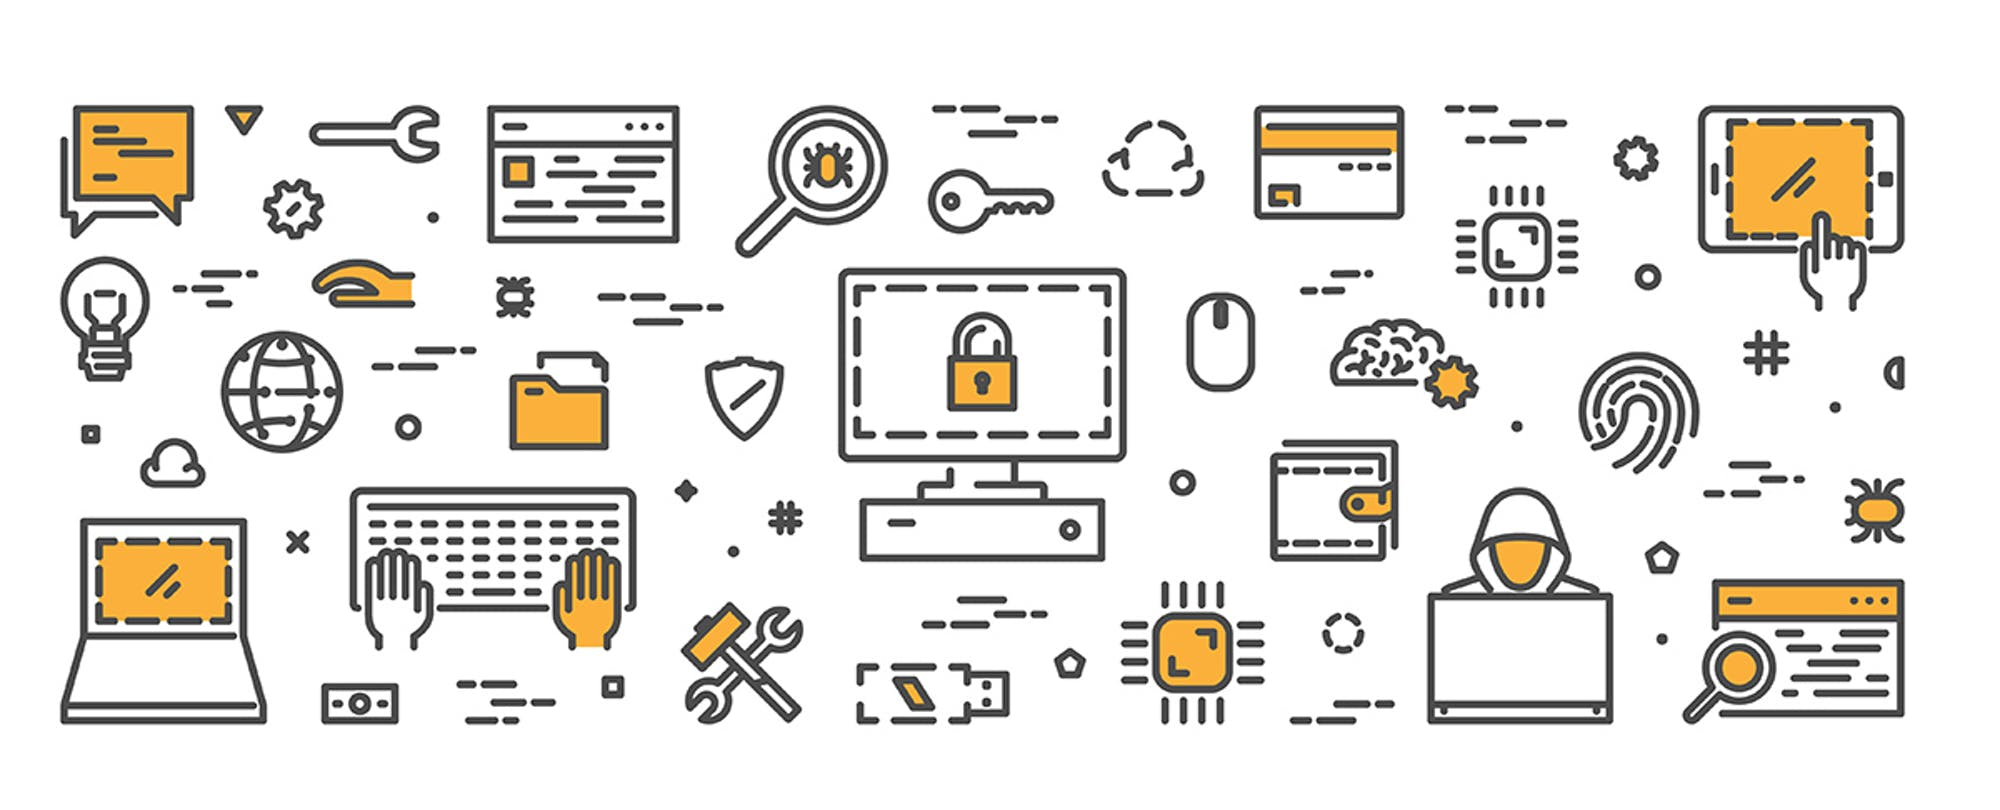 Overcoming Hacking and Cybercrimes — The Next Obstacle to Edtech